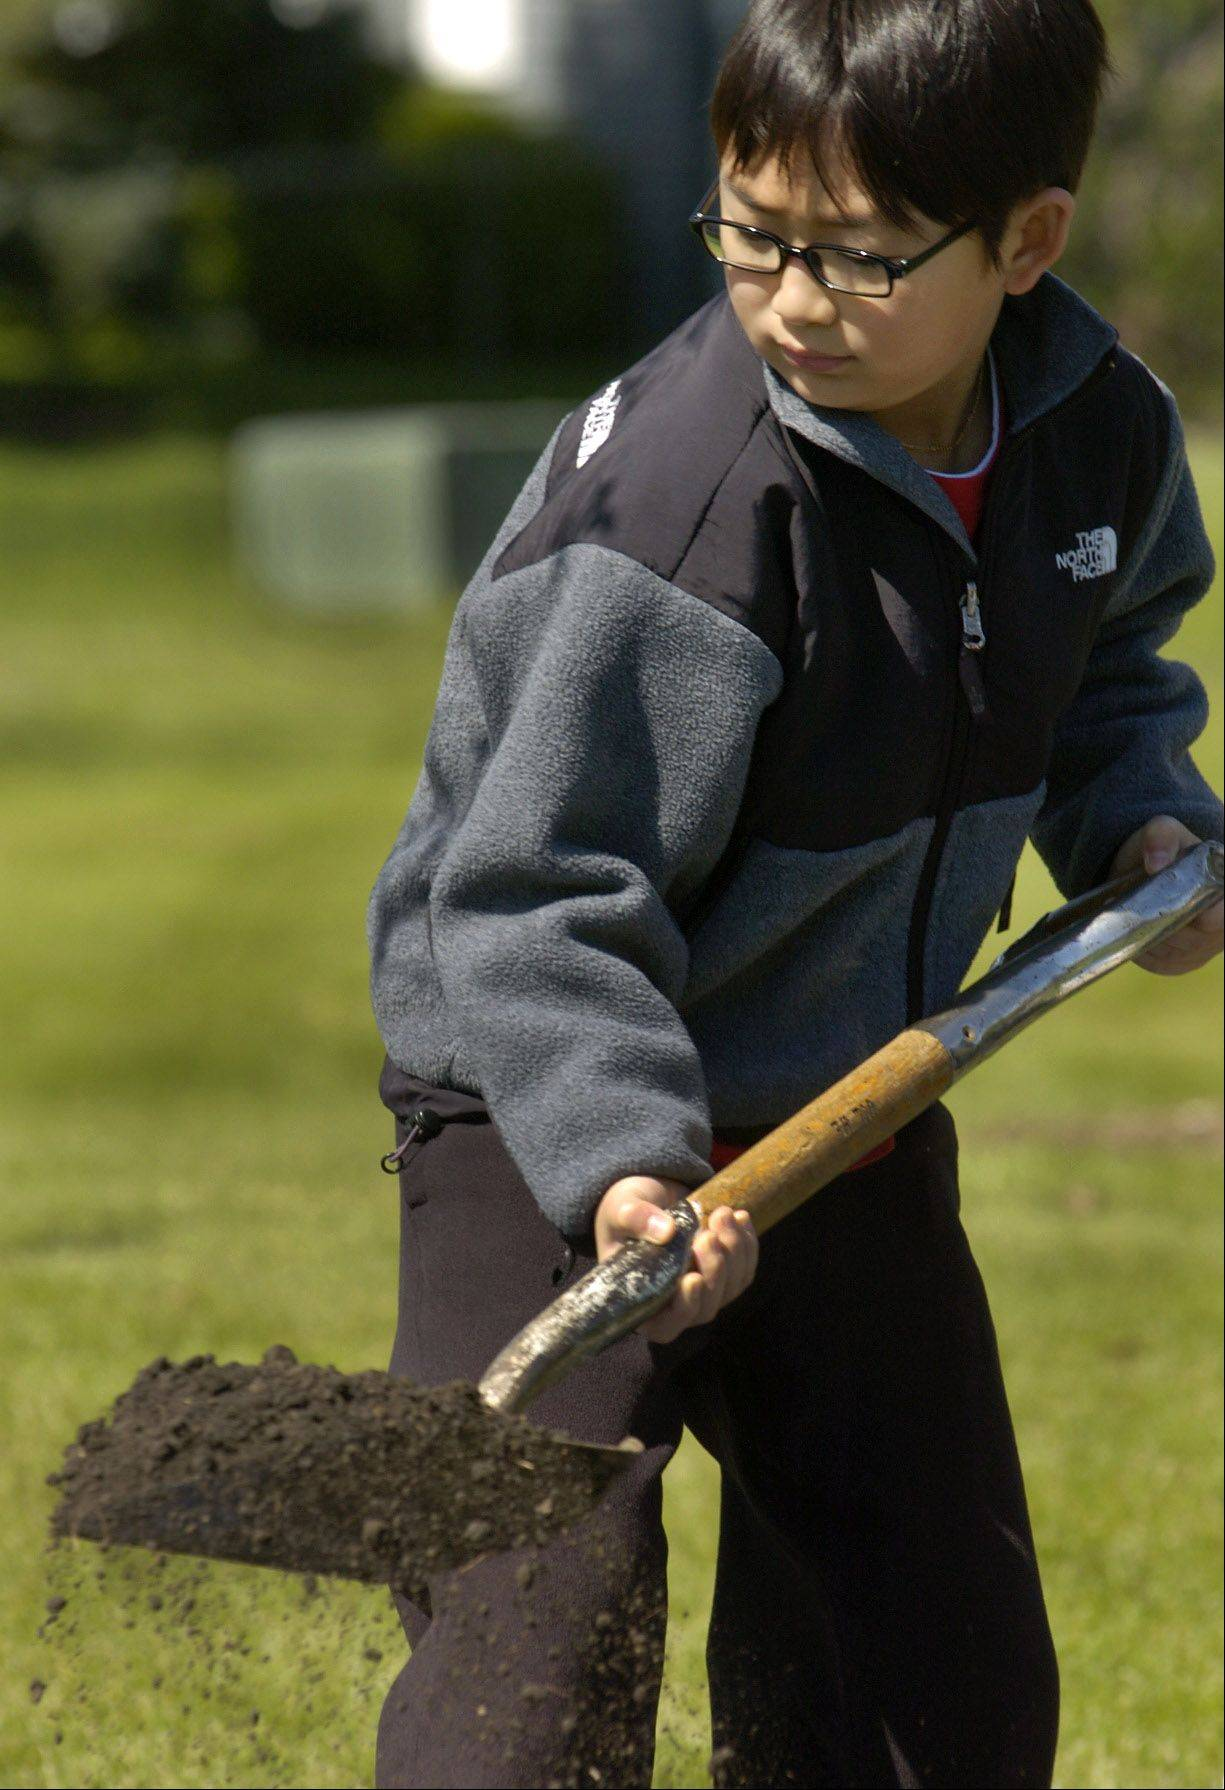 Hayden Kim shovels some dirt on a freshly planted tree at Arbor Day Park in Hoffman Estates.